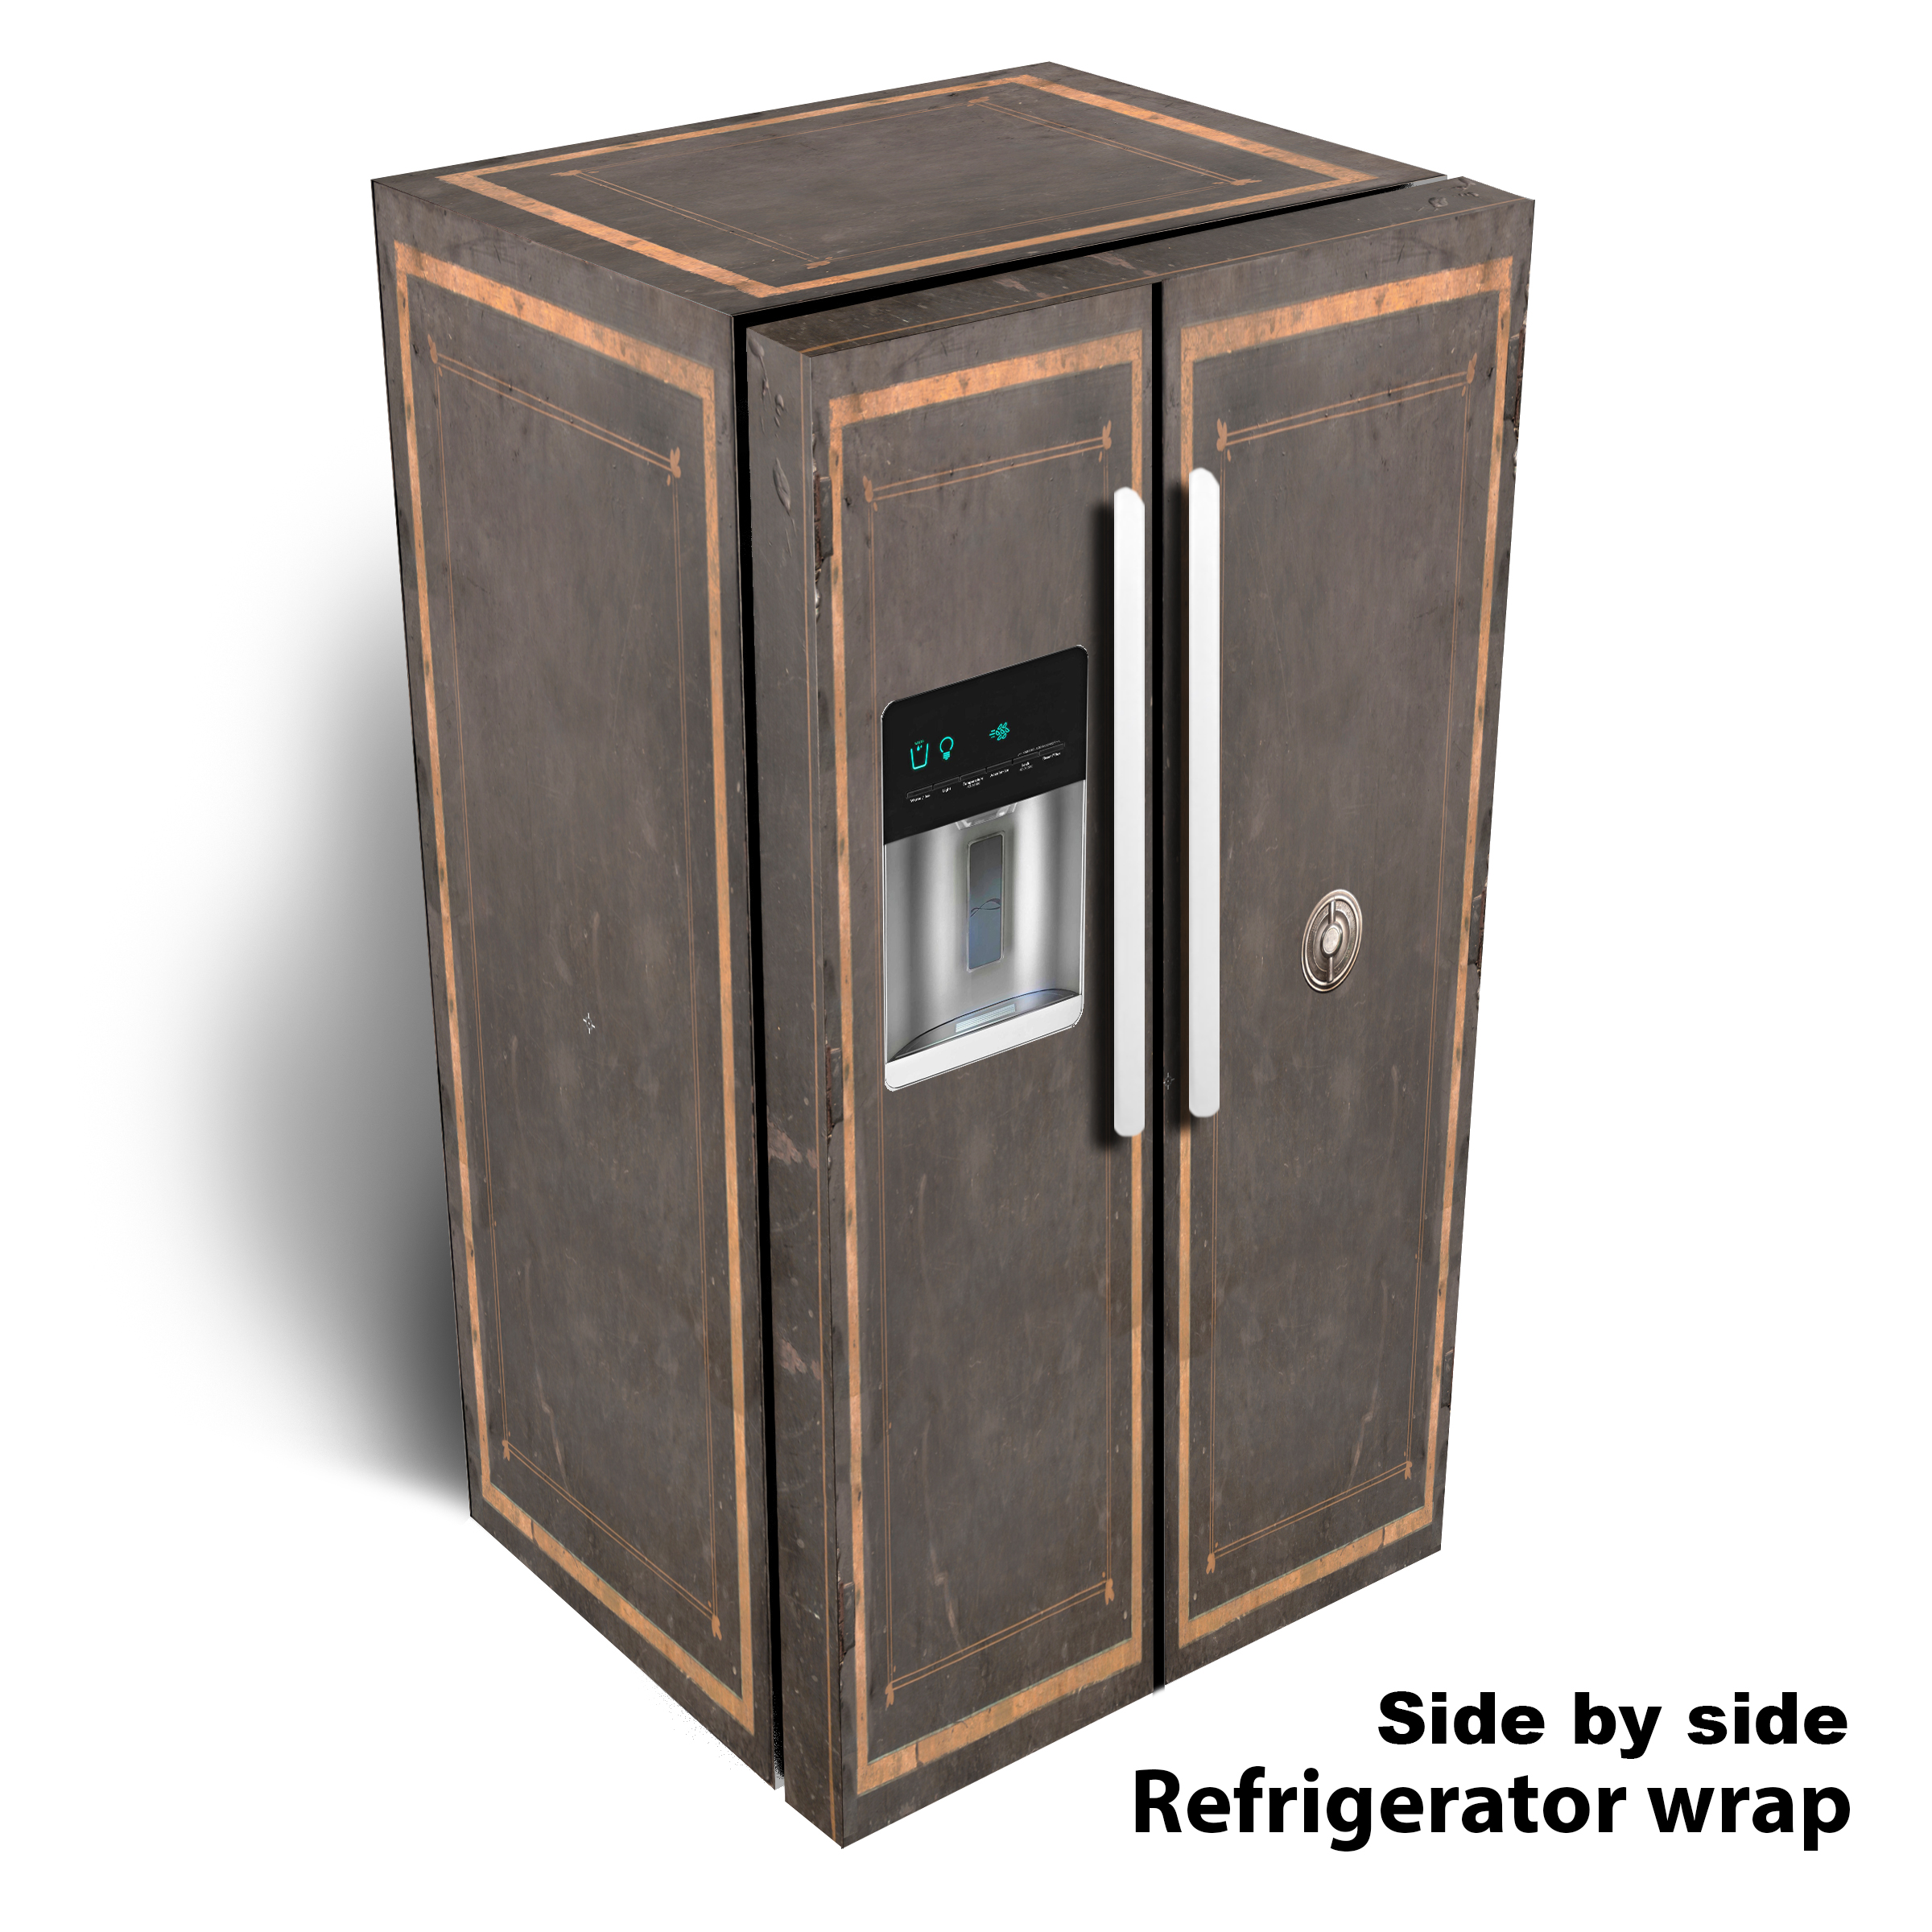 Vintage Safe Side by Side Refrigerator Wrap